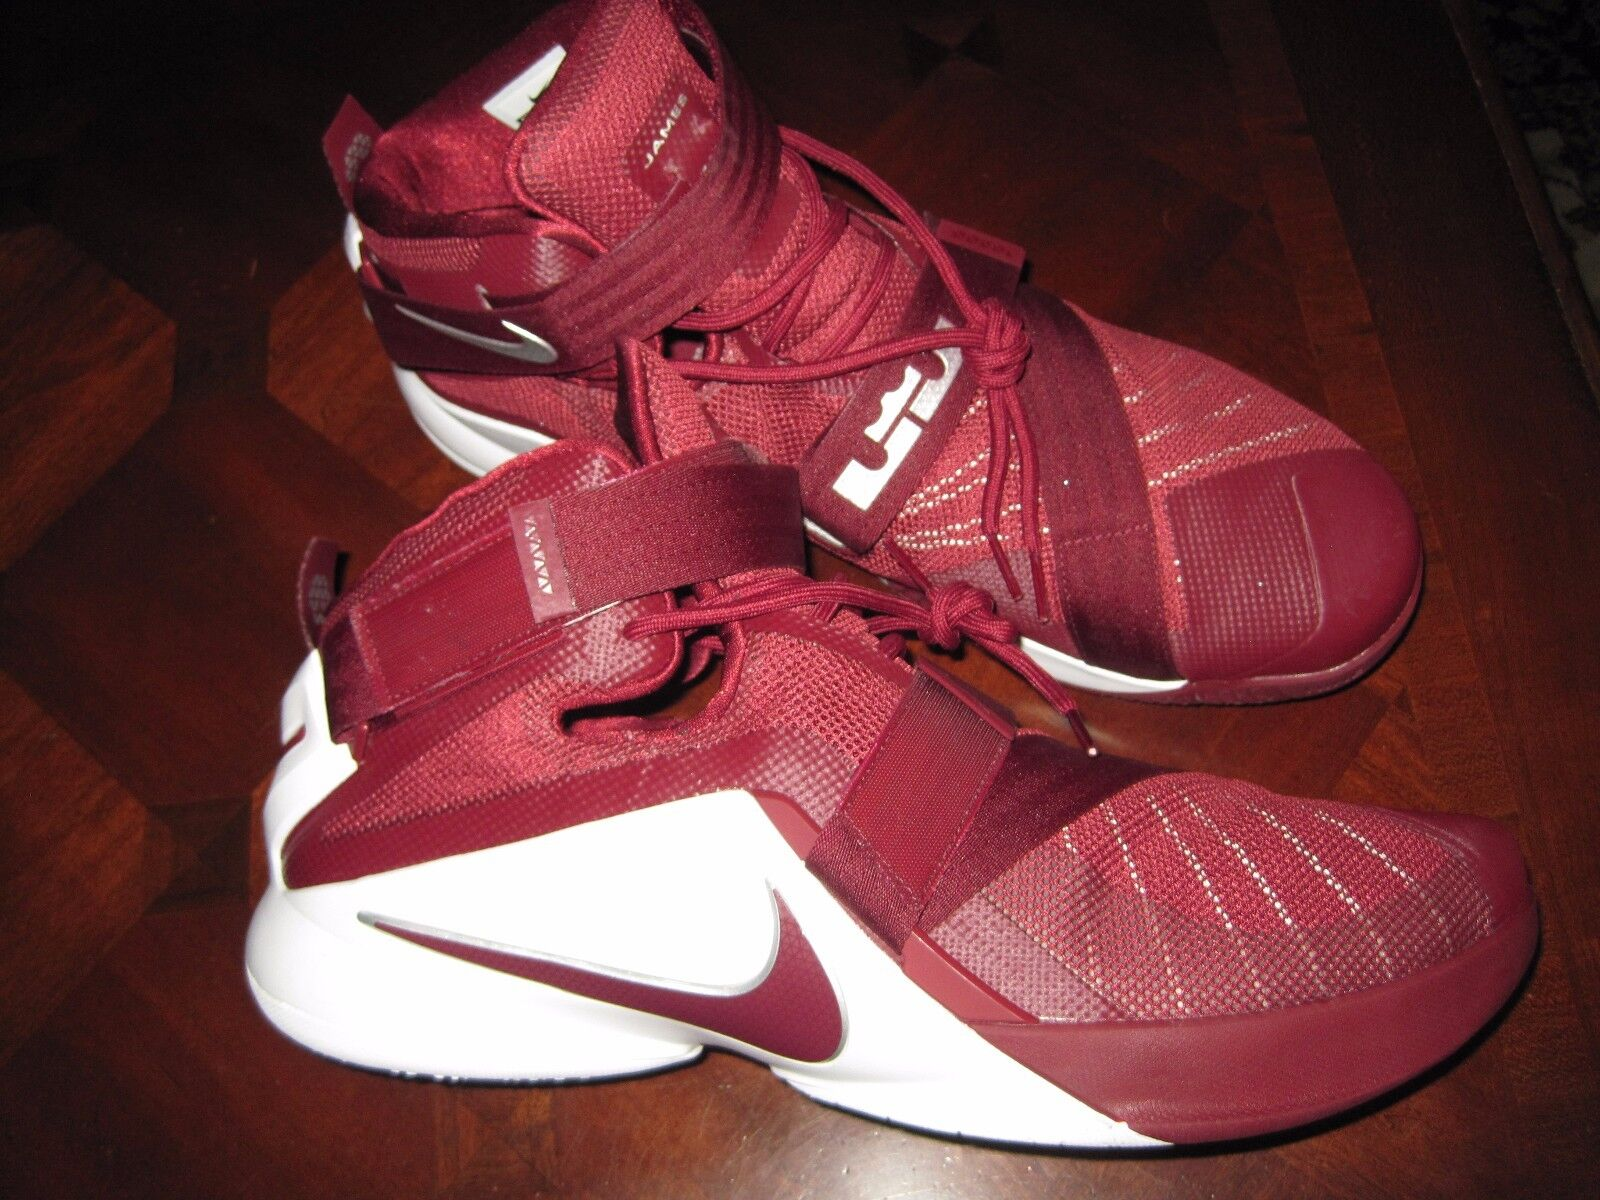 NIKE ZOOM LEBRON SOLDIER IX BASKETBALL SHOES CRIMSON 813264 663 MEN'S Price reduction Casual wild